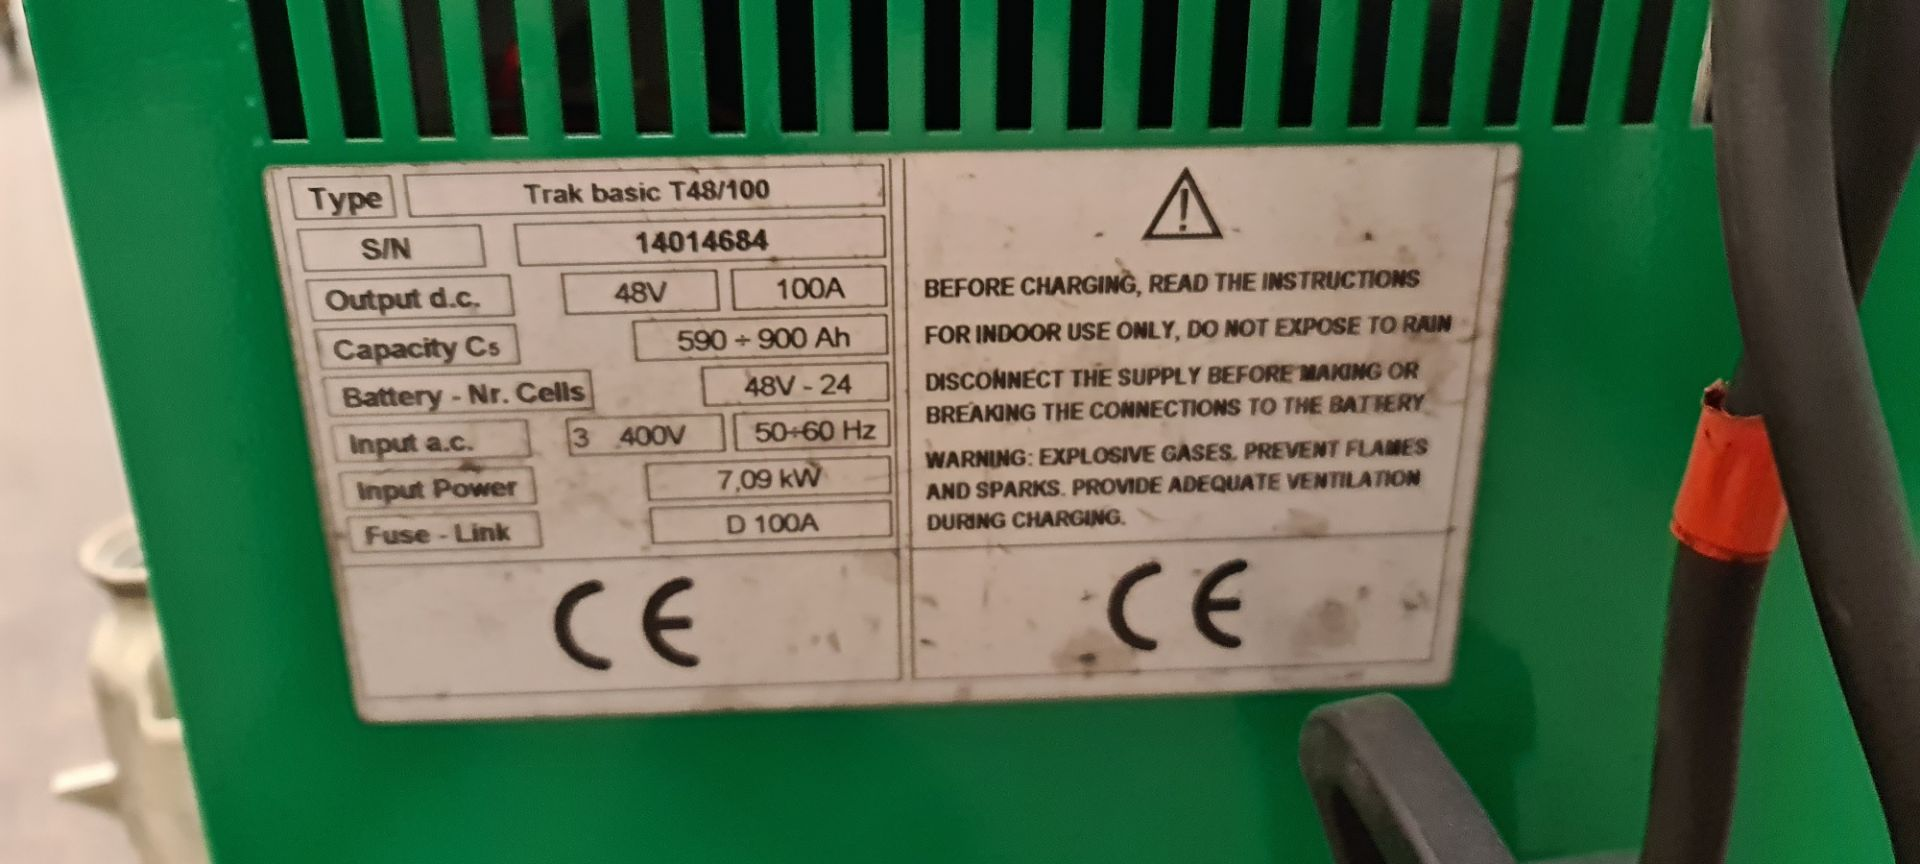 2014 Flexi Euro AC 'bendy' electric Fork Lift Truck - Image 15 of 29